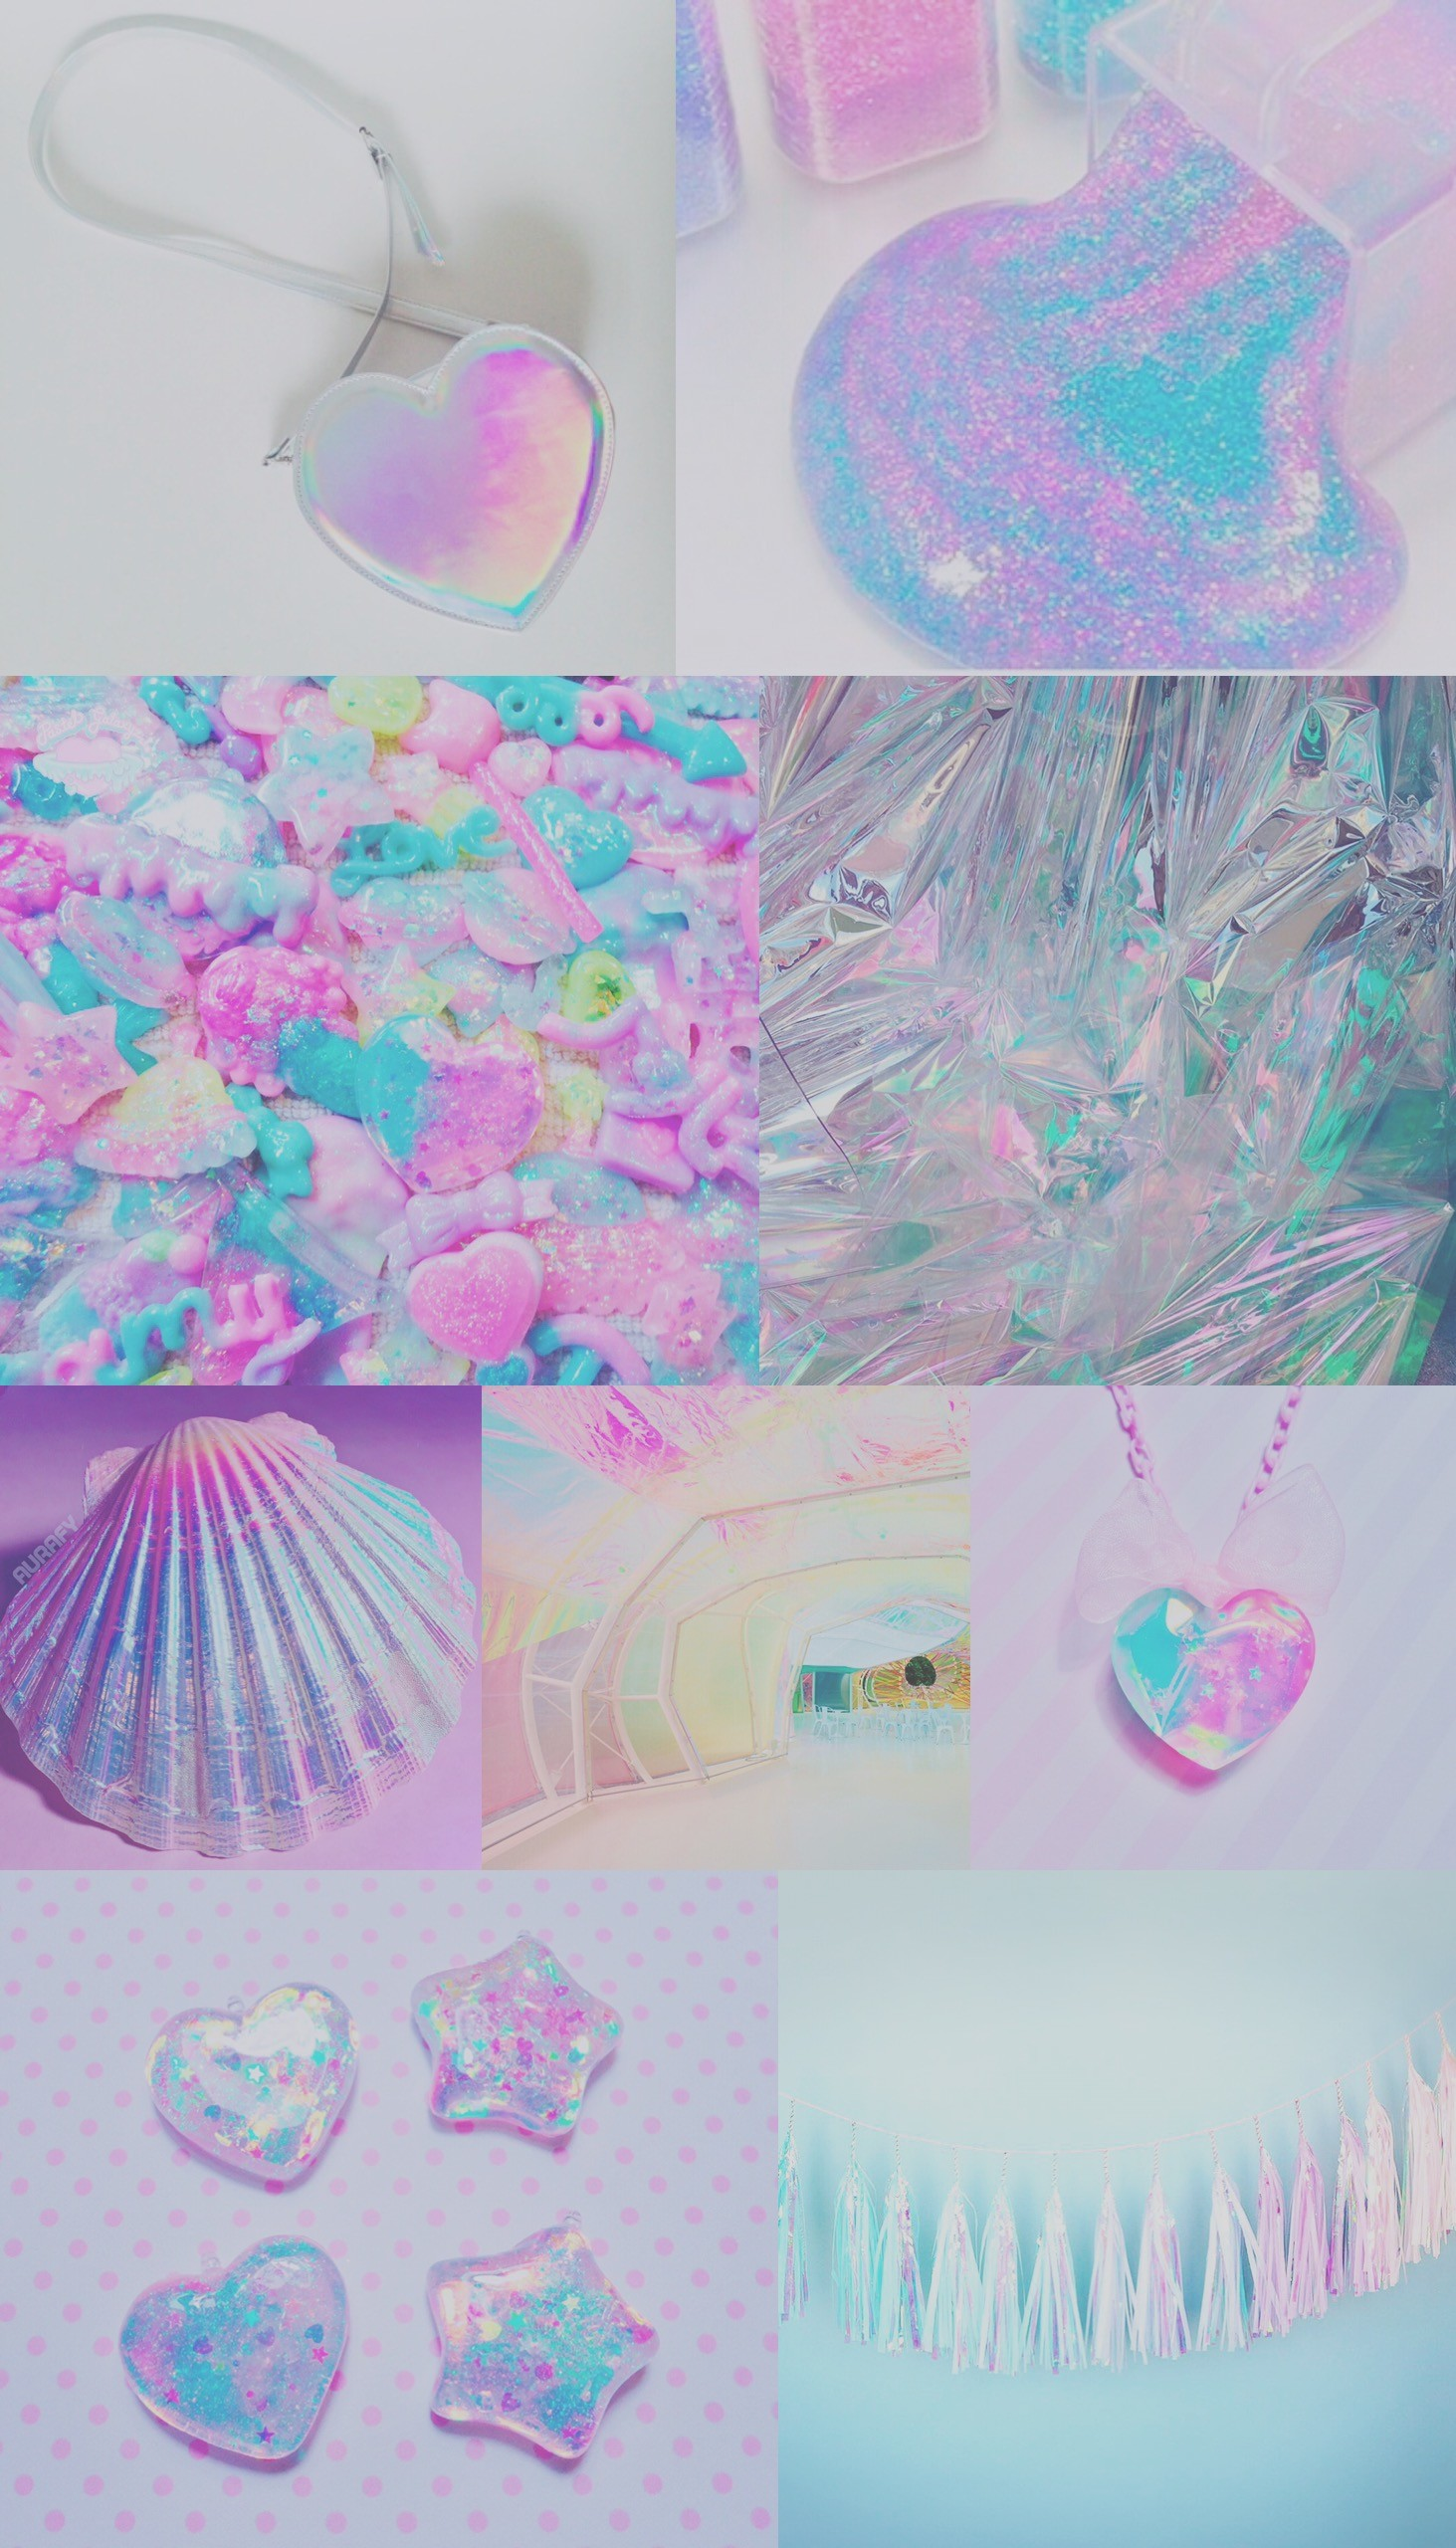 Iridescent collage wallpaper, background, iPhone, android, pretty, sparkly,  pink,